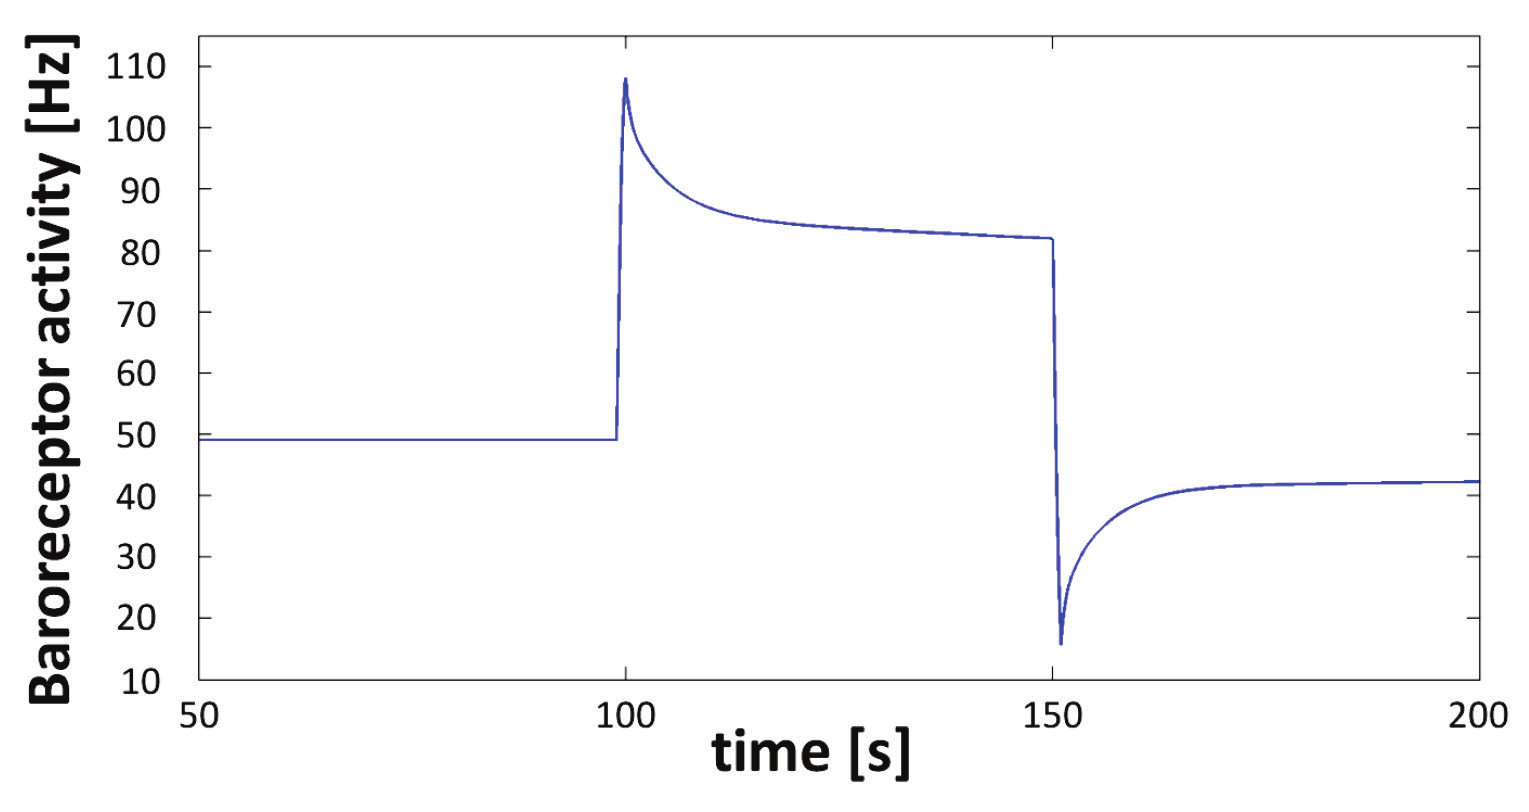 Fig. 5: Step change of baroreceptor activity during blood pressure change from 100 mmHg to 150 mmHg and vice versa.